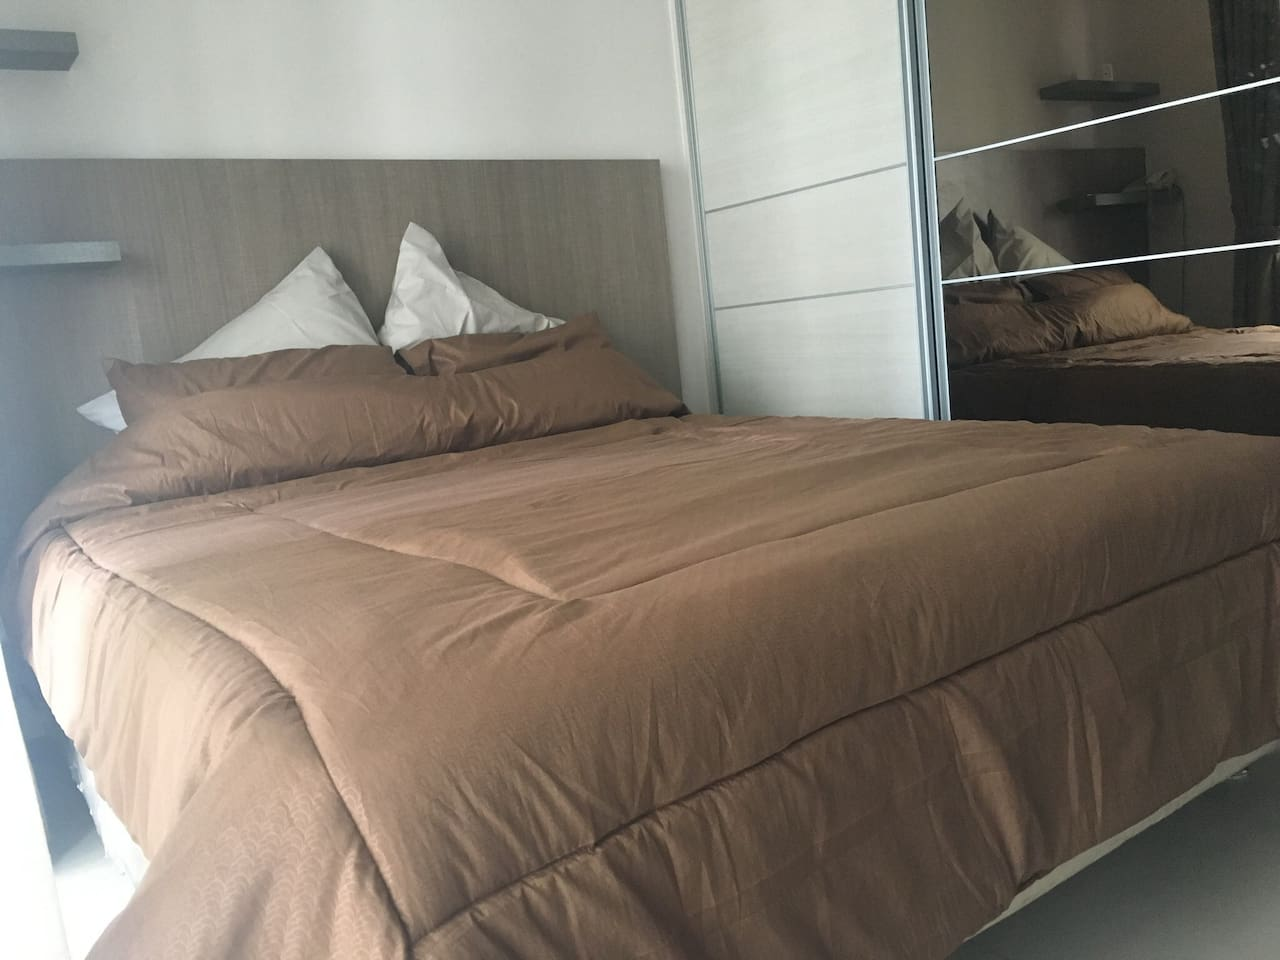 Queen size bed with puffy bedcover and pillows